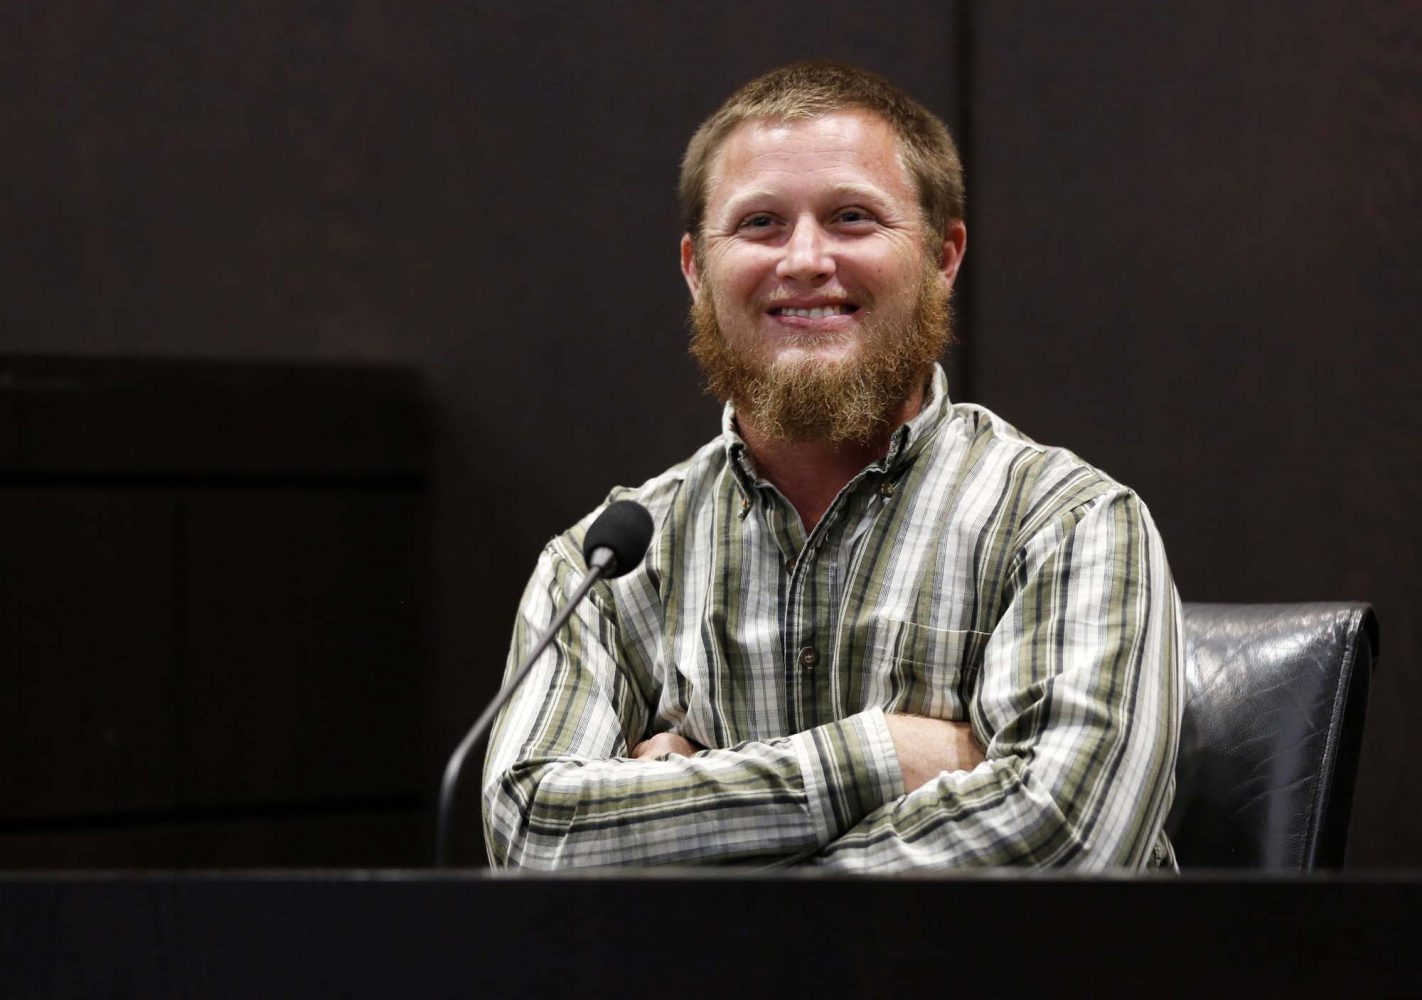 Levy County resident James Raines smiles during a lighthearted moment while testifying during Pedro Bravo's murder trial in courtroom 1B of the Alachua County Criminal Justice Center Friday, August 8, 2014. Raines and brother-in-law Jesse Everidge stumbled upon the remains of Christian Aguilar while the two searched for jasmine vines in the Gulf Hammock Hunt Club.  Bravo is accused of killing University of Florida student Christian Aguilar.  (Doug Finger/The Gainesville Sun/Pool)